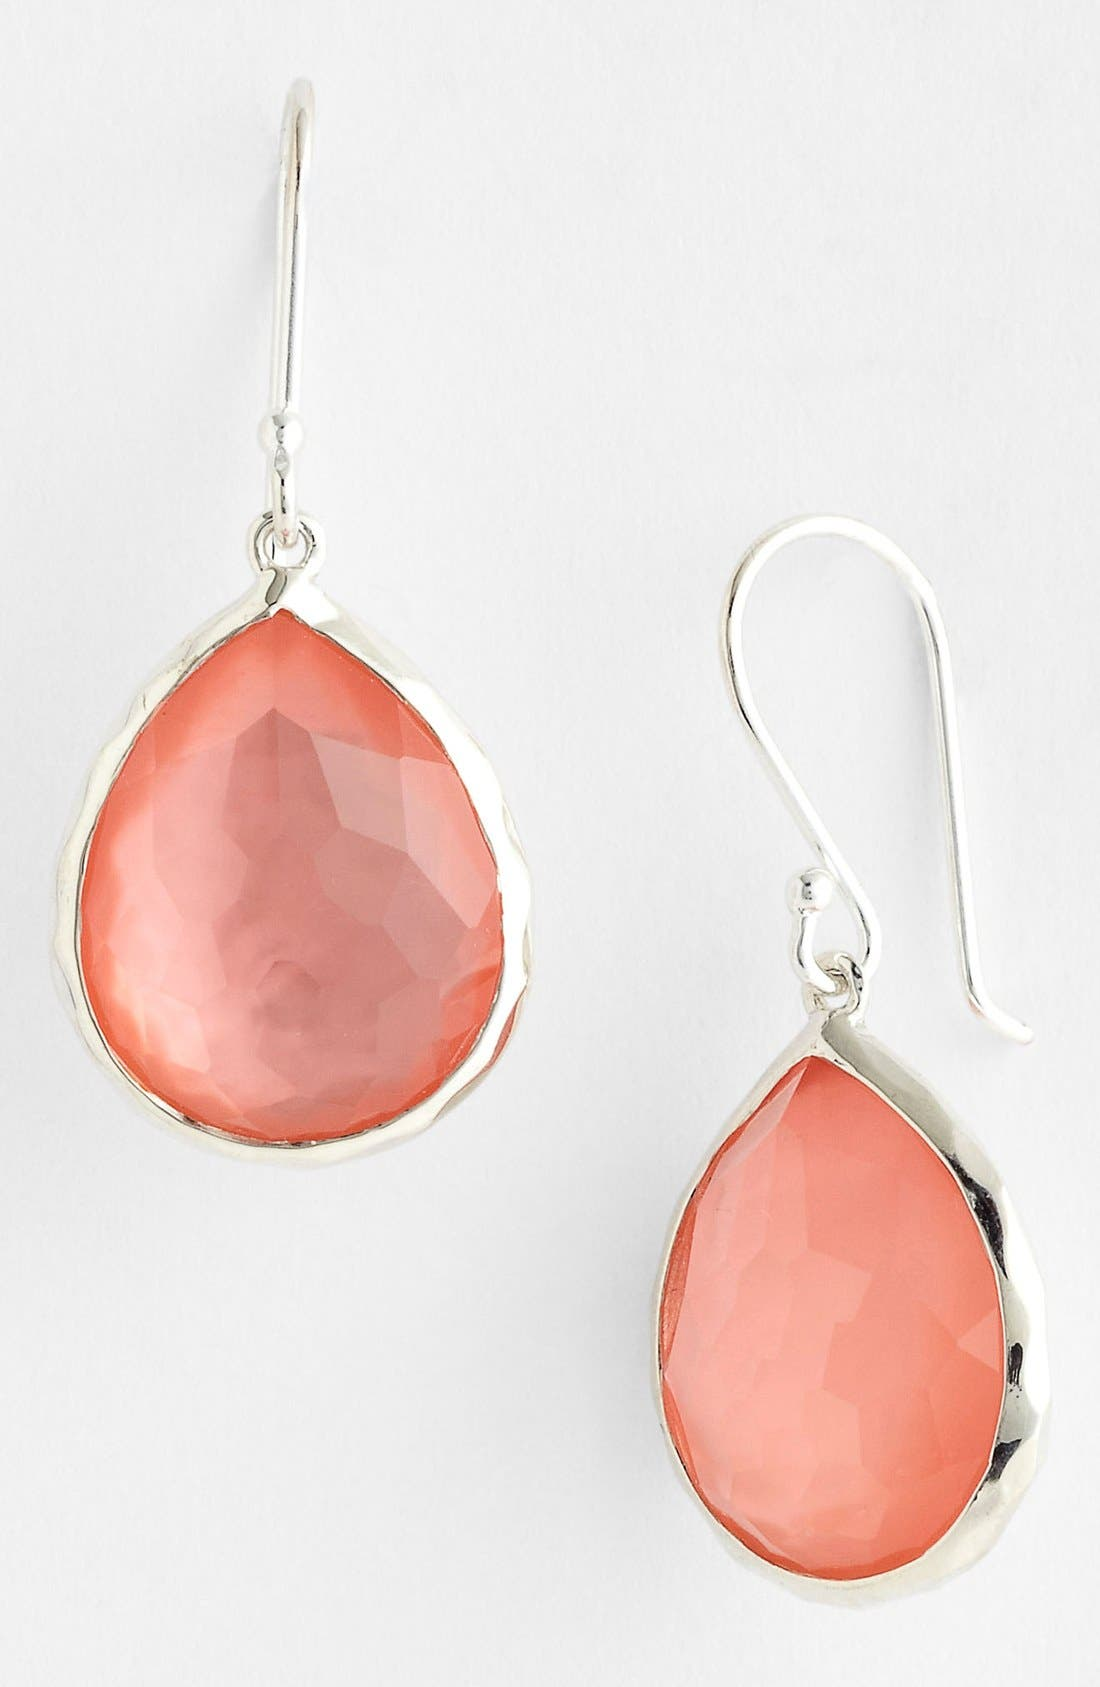 Main Image - Ippolita 'Wonderland' Teardrop Earrings (Online Only) (Nordstrom Exclusive)